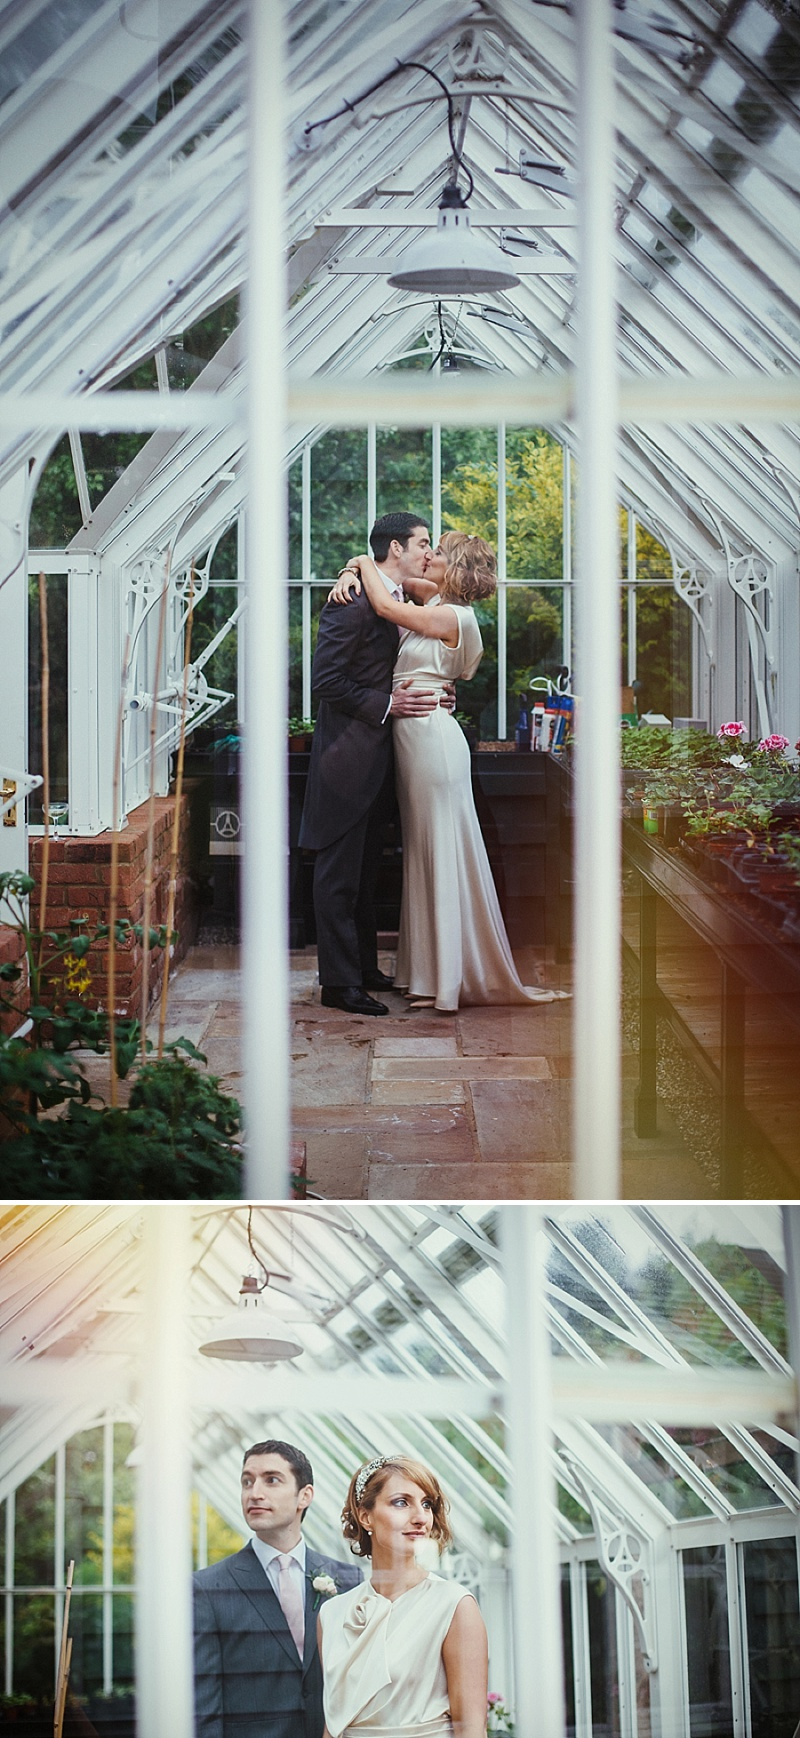 A Vintage Inspired Marquee Wedding At The Bride's Family Home With Bride In David Fielden And Jimmy Choo And Bridesmaids In Sequinned Adrianna Pappell Gowns With Groom And Groomsmen In Suits By Dress To Kill 7